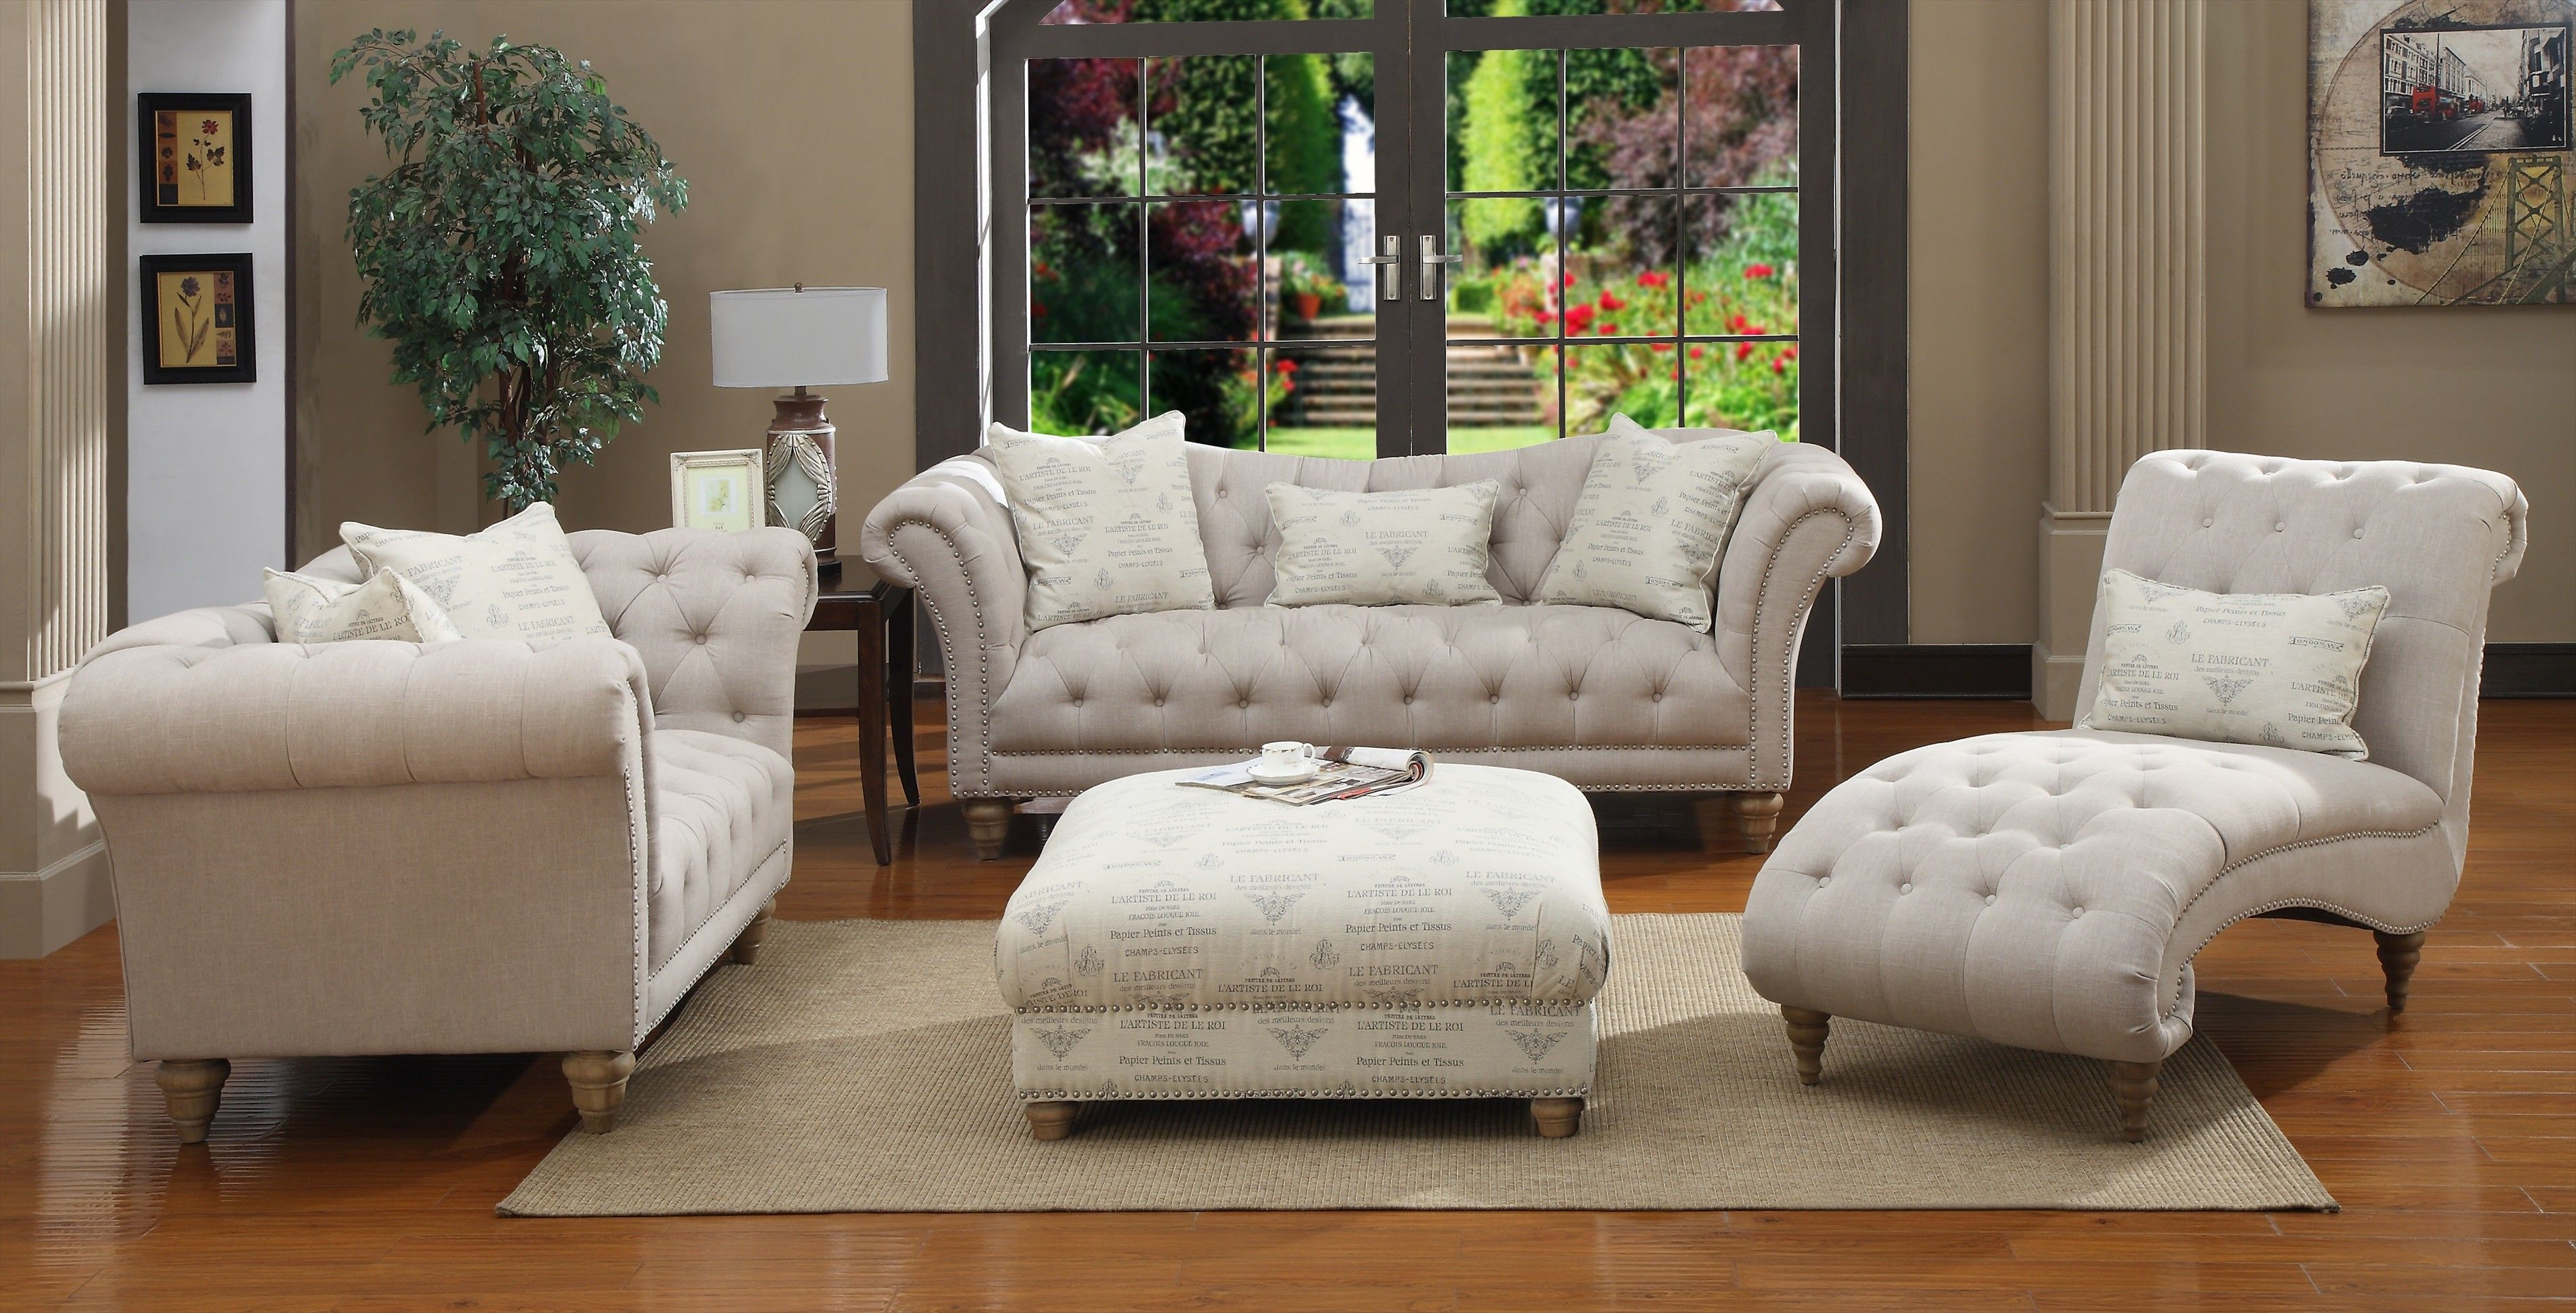 Cool Tufted Couch Set Perfect Tufted Couch Set 38